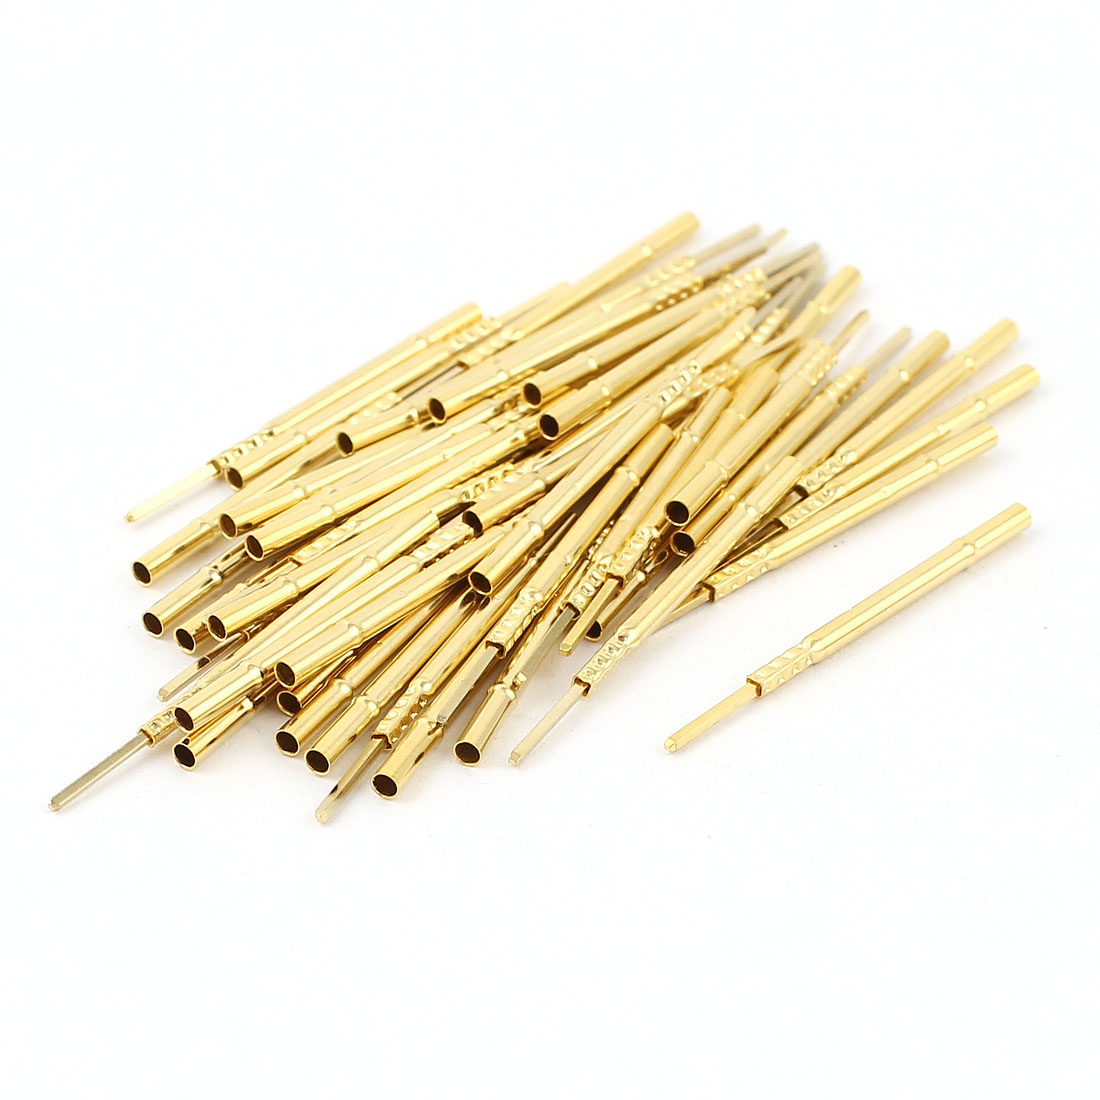 50 Pcs R160-3W 1.67mm Dia Testing Probe Pin Receptacles Gold Tone